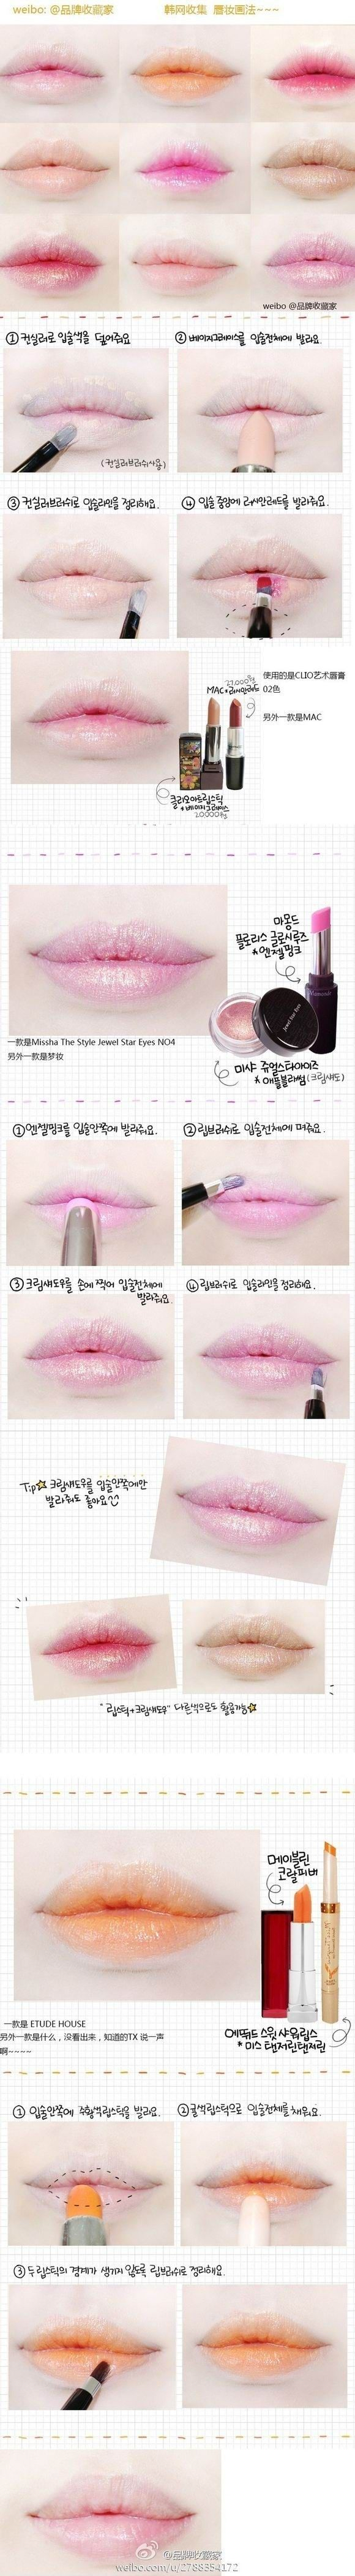 """Gradient lips give that """"just ate a popsicle"""" adorable look that can be part of your daily make up. So cute ❤"""